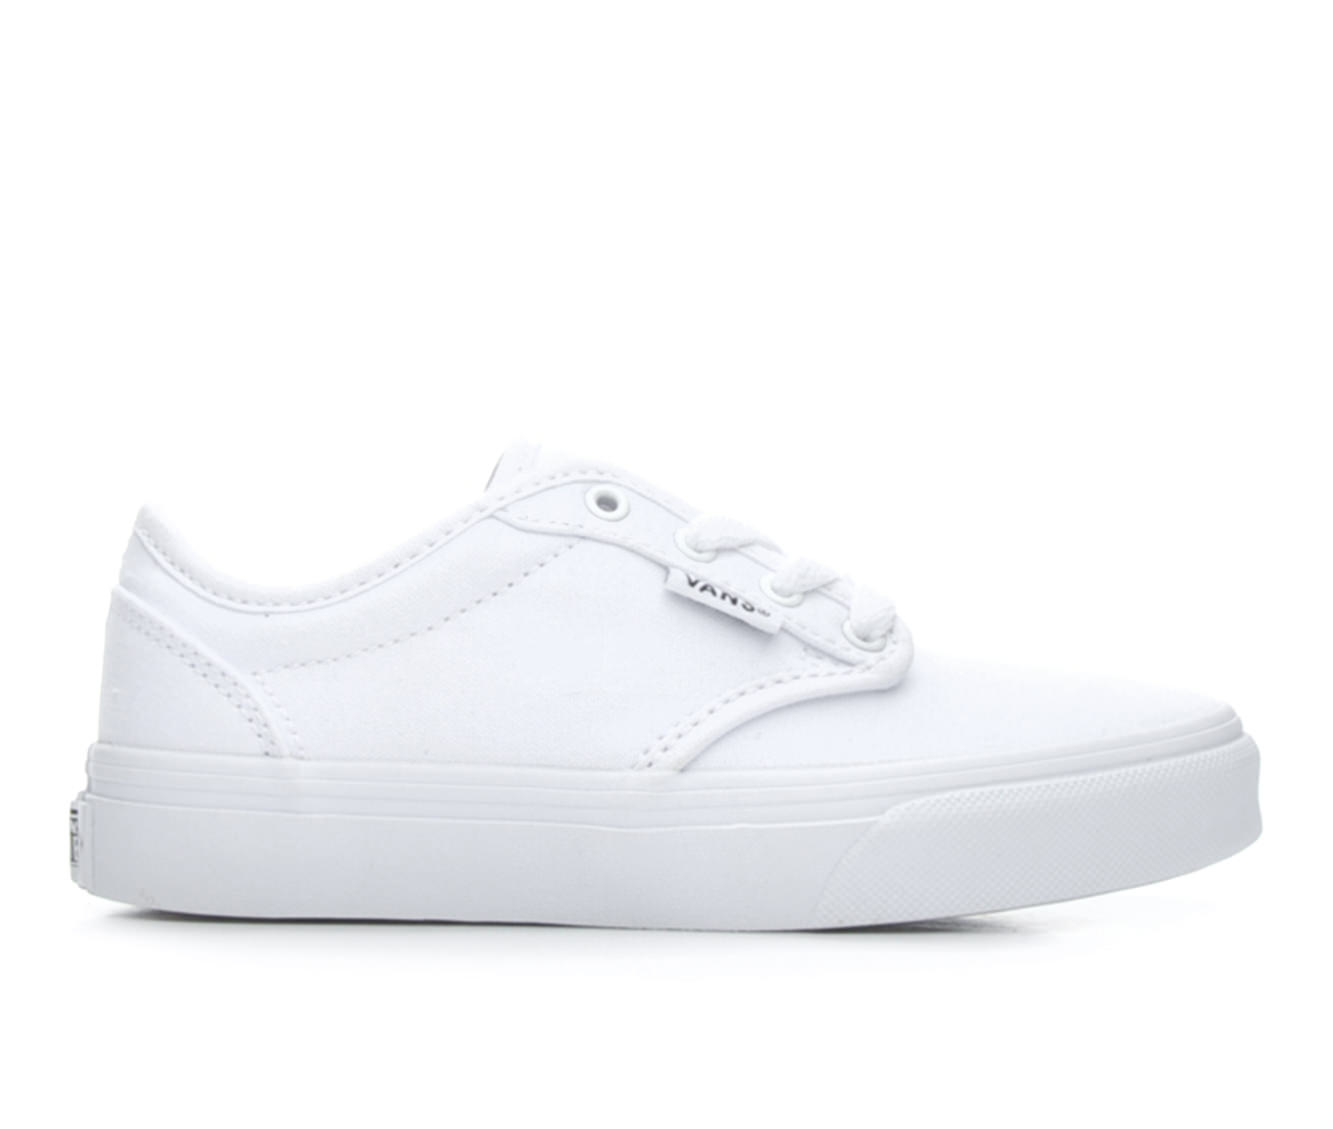 Boys' Vans Atwood Skate Shoes (White)